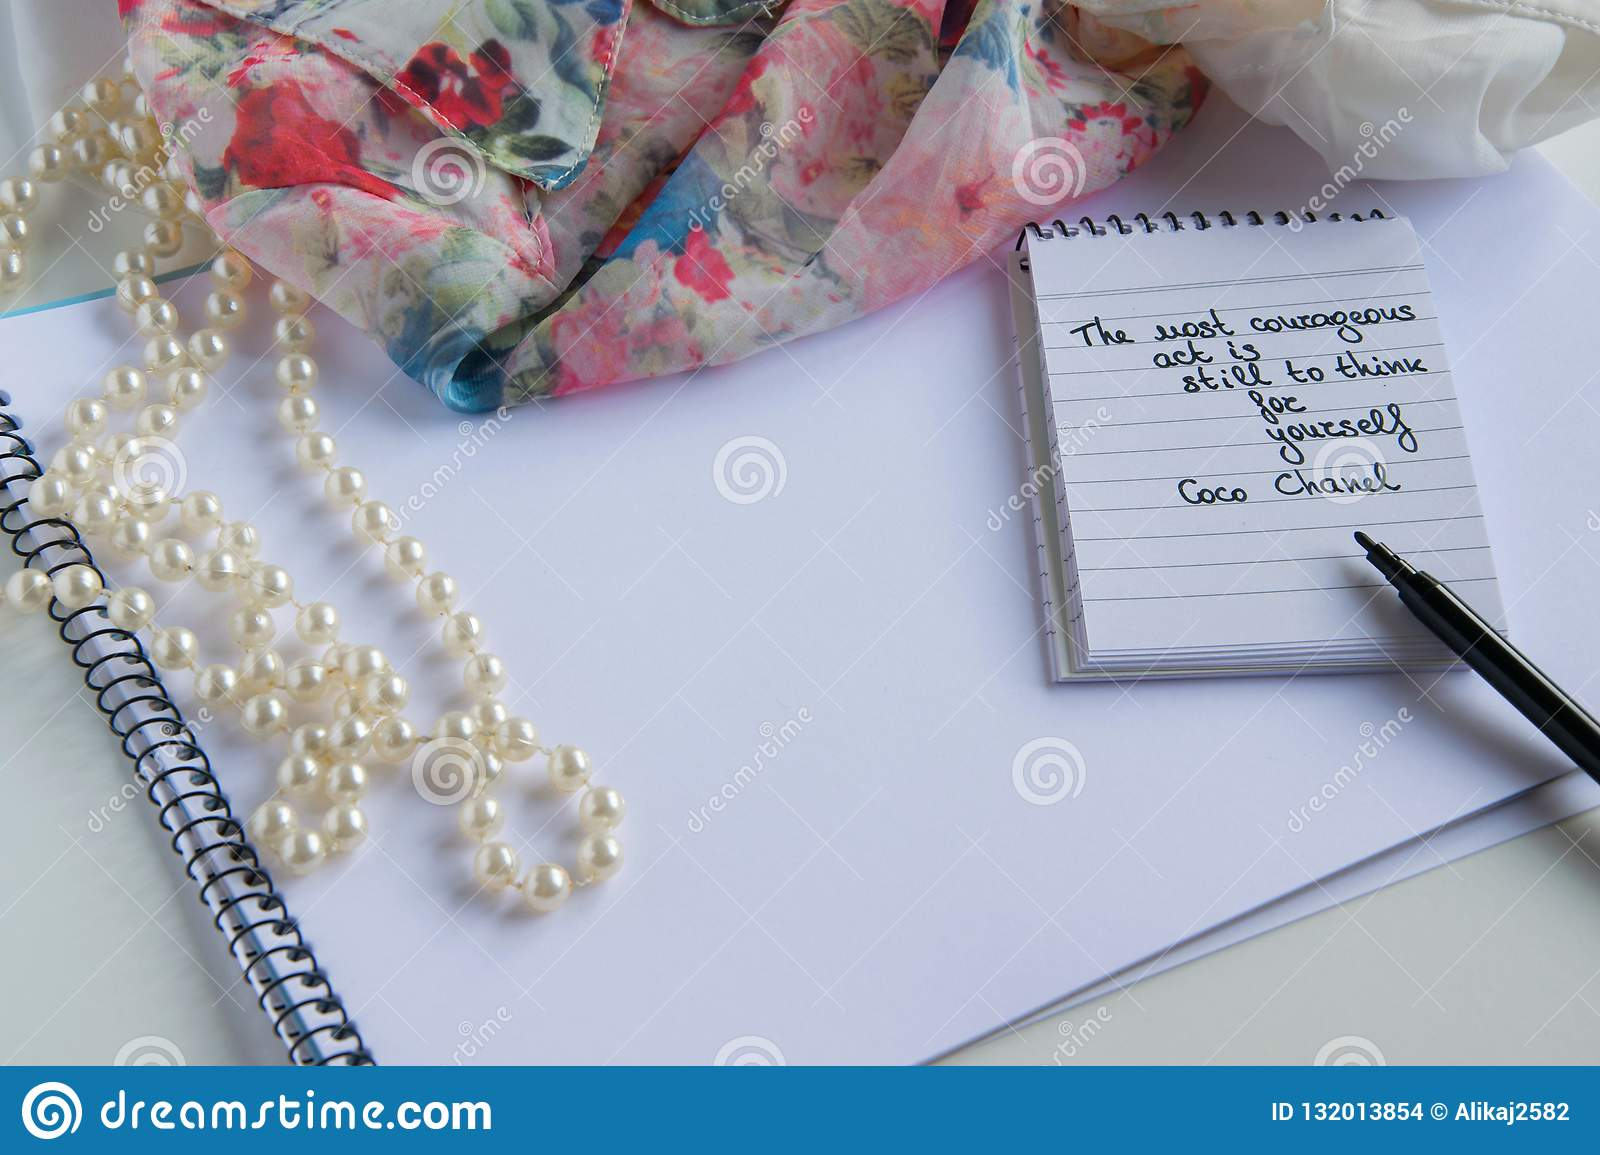 Coco Chanel quotes written on a block note, pearl accessories and an silky flower shirt